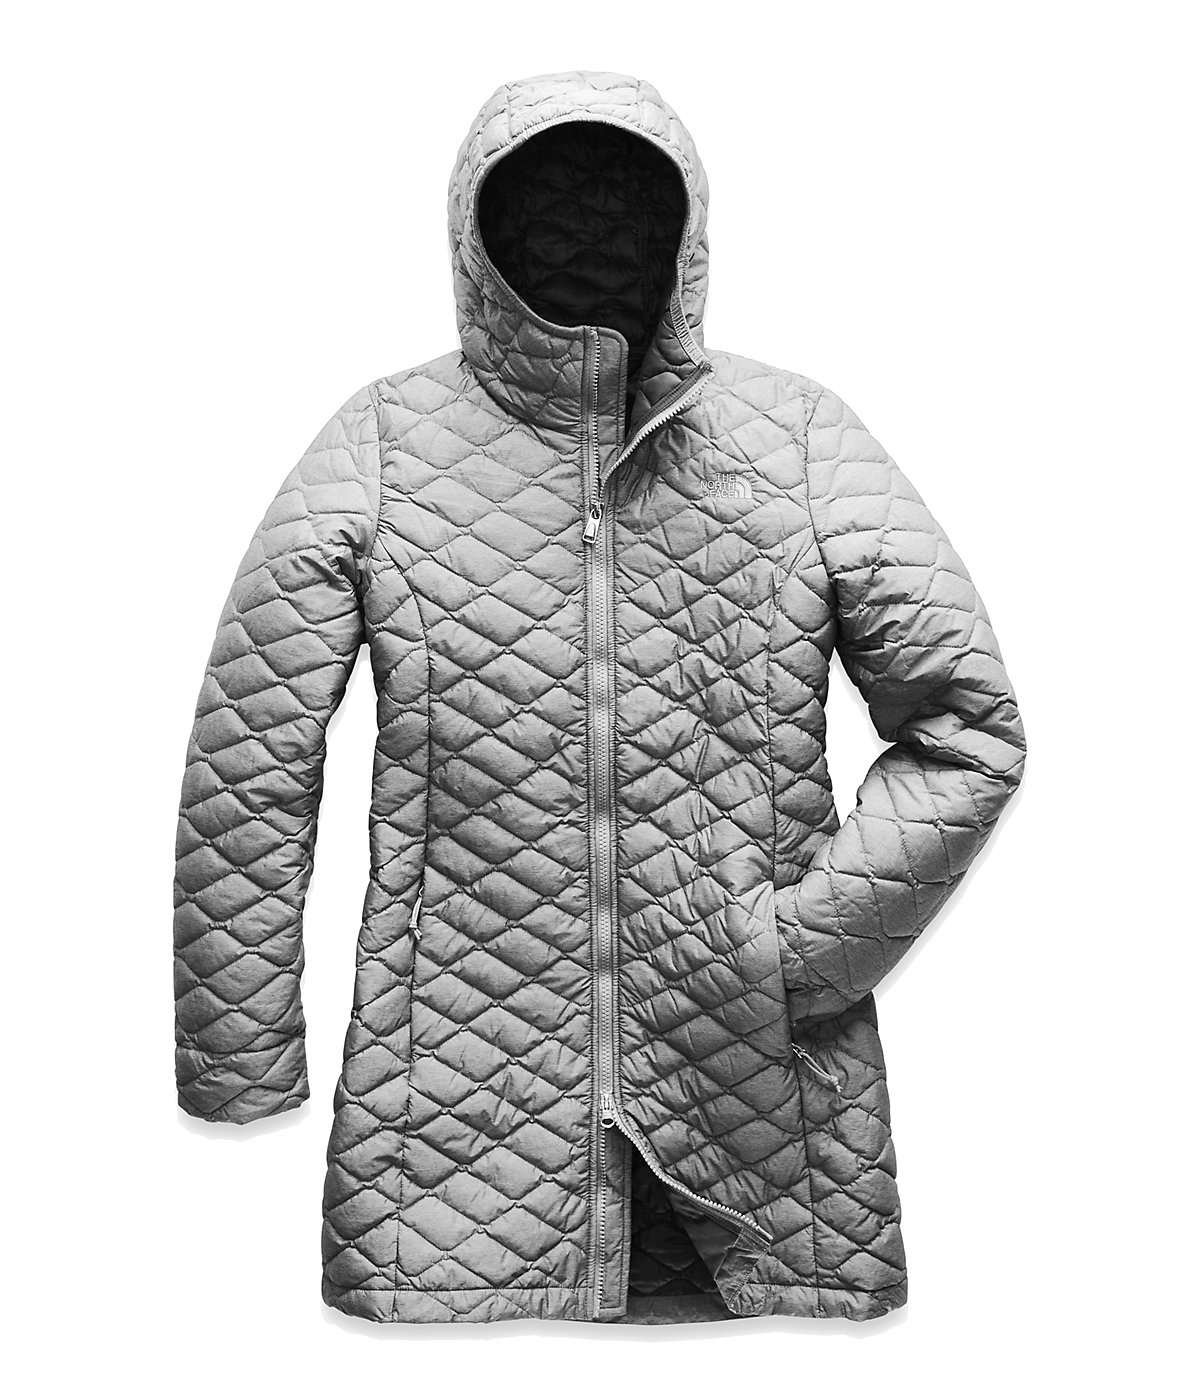 3c7769930 The North Face Women's Thermoball Parka II in 2019 | Products ...